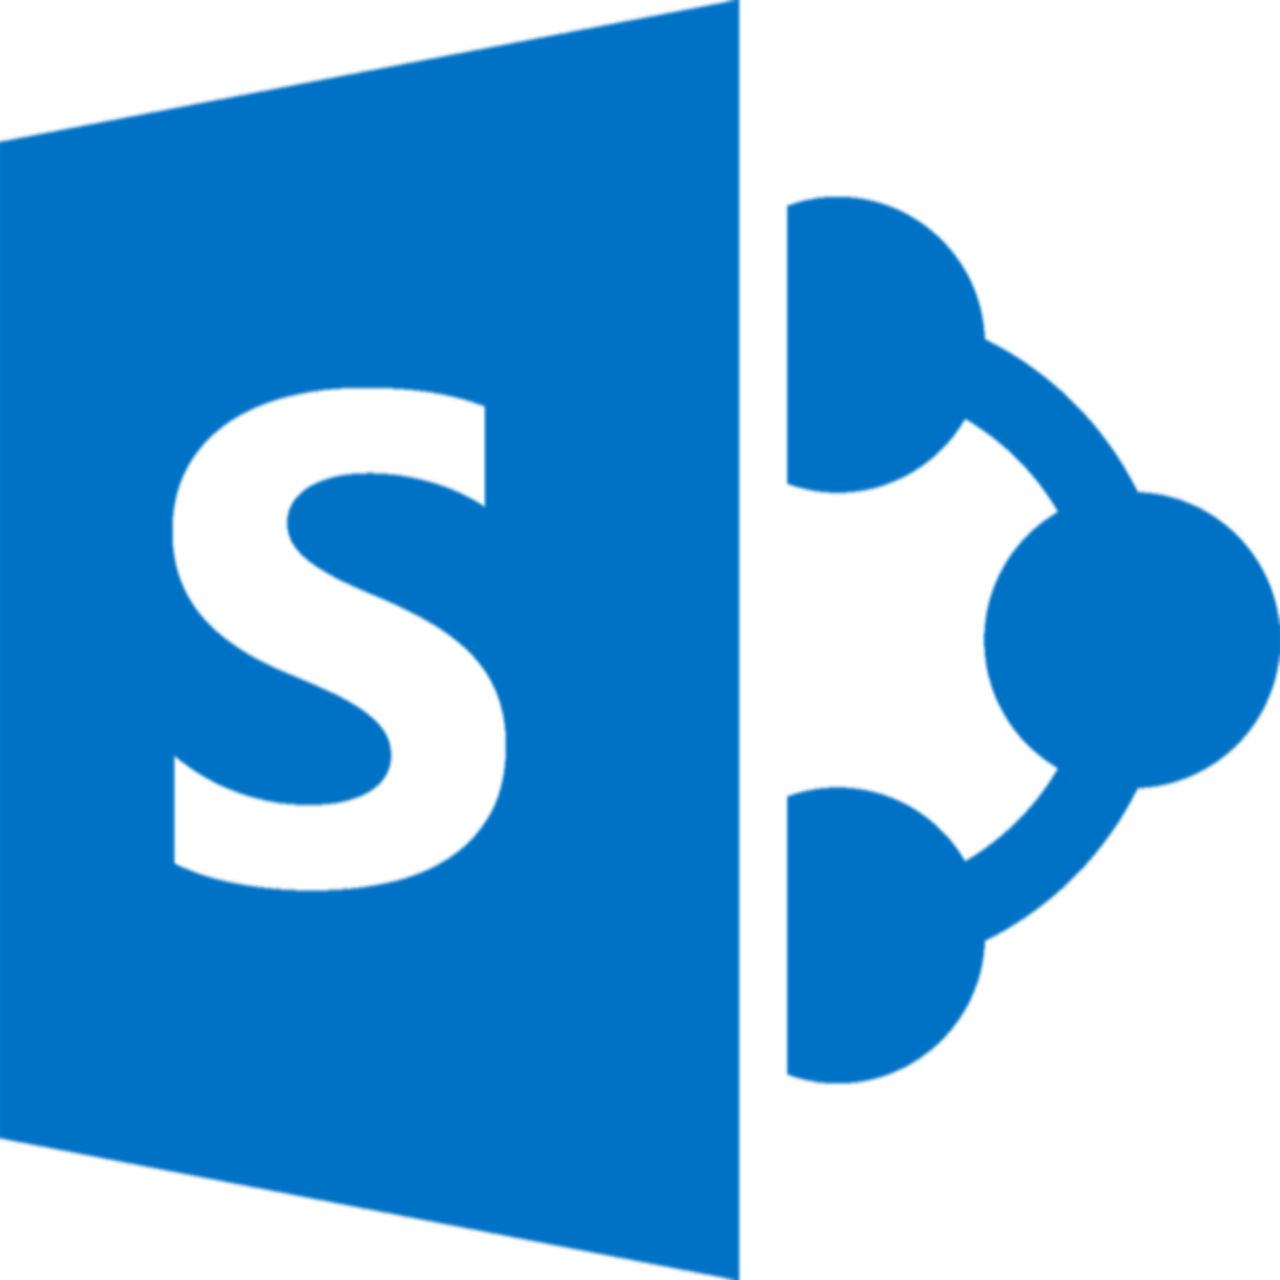 I will create an configure a single SharePoint Online site